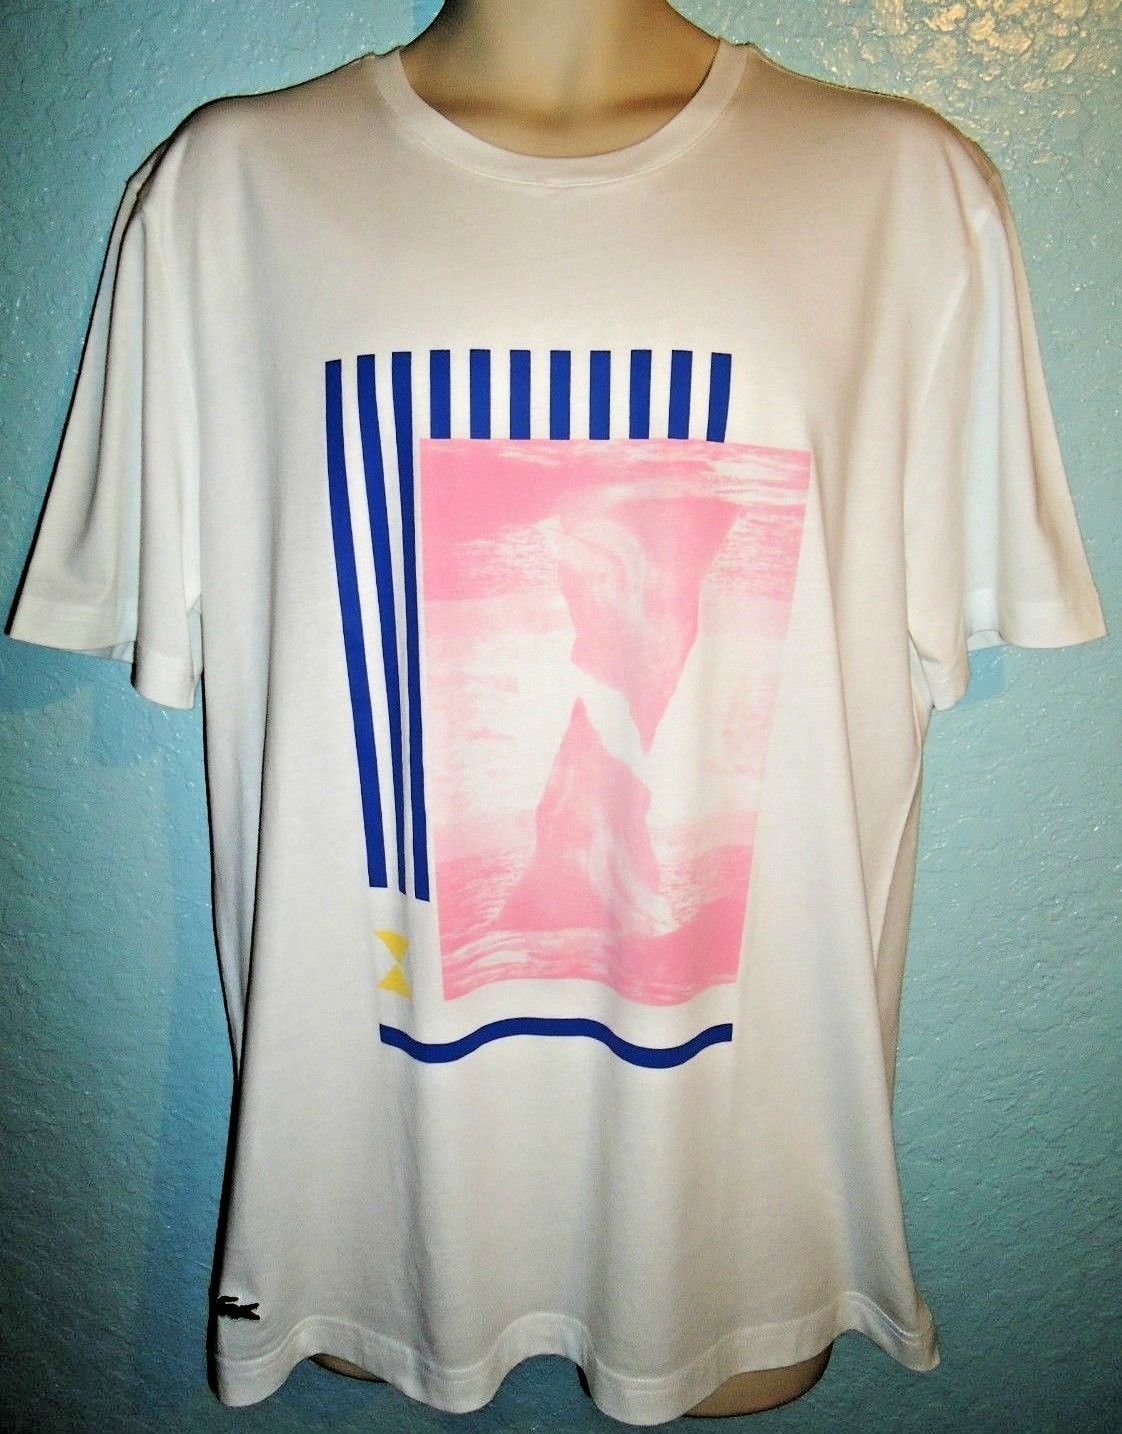 LACOSTE - LIVE - SLIM FIT - CYCLONE - XL - WHITE - PINK - T-SHIRT - NEW - TEE